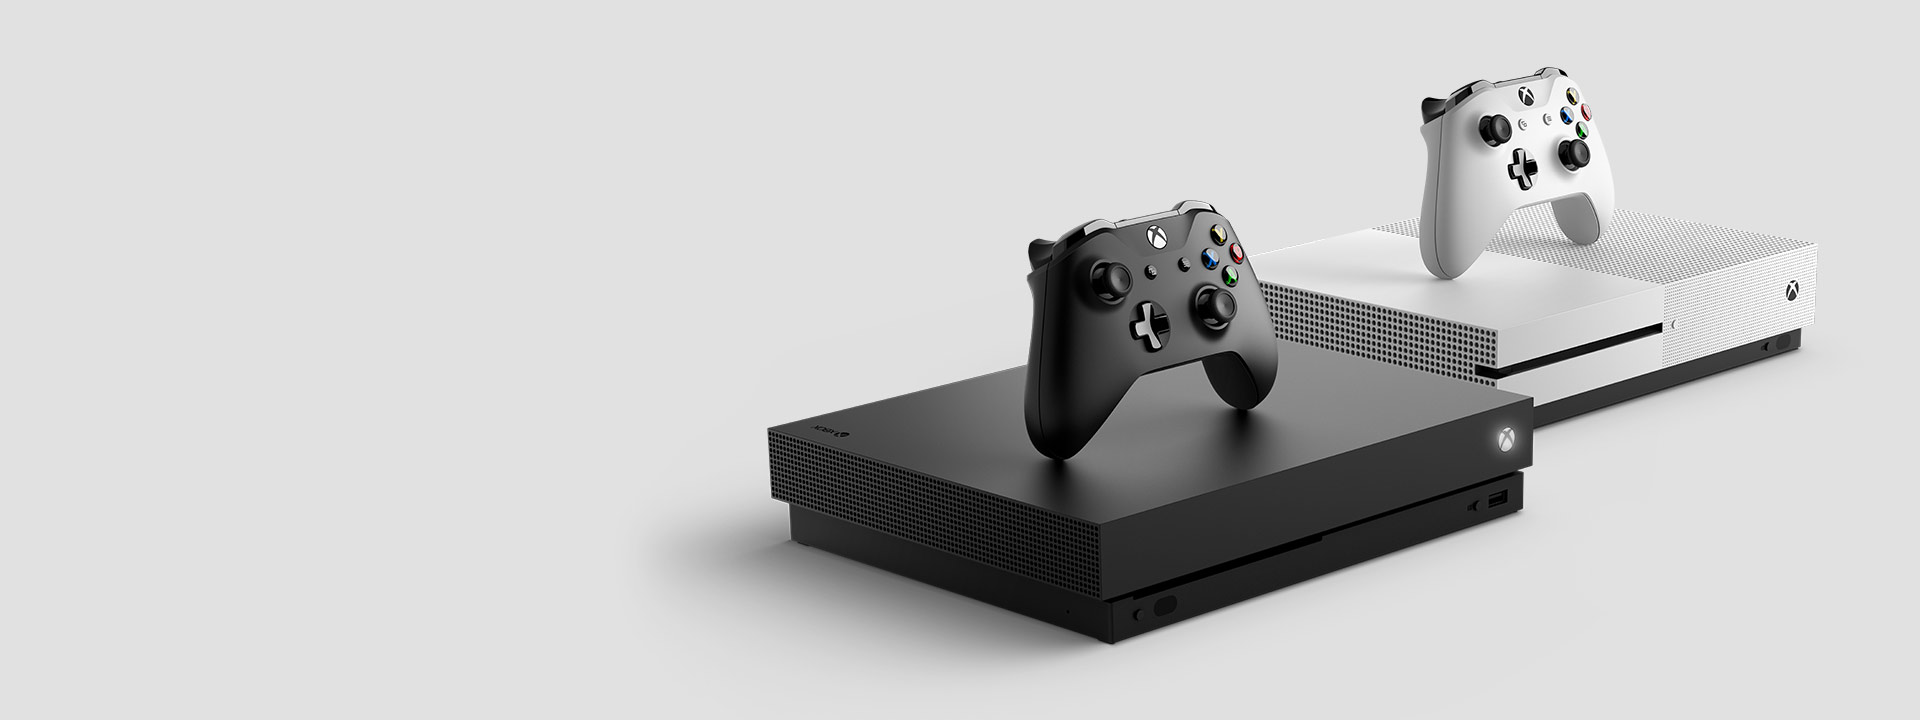 Side view of the Xbox One X and Xbox One S with Wireless Controllers on top